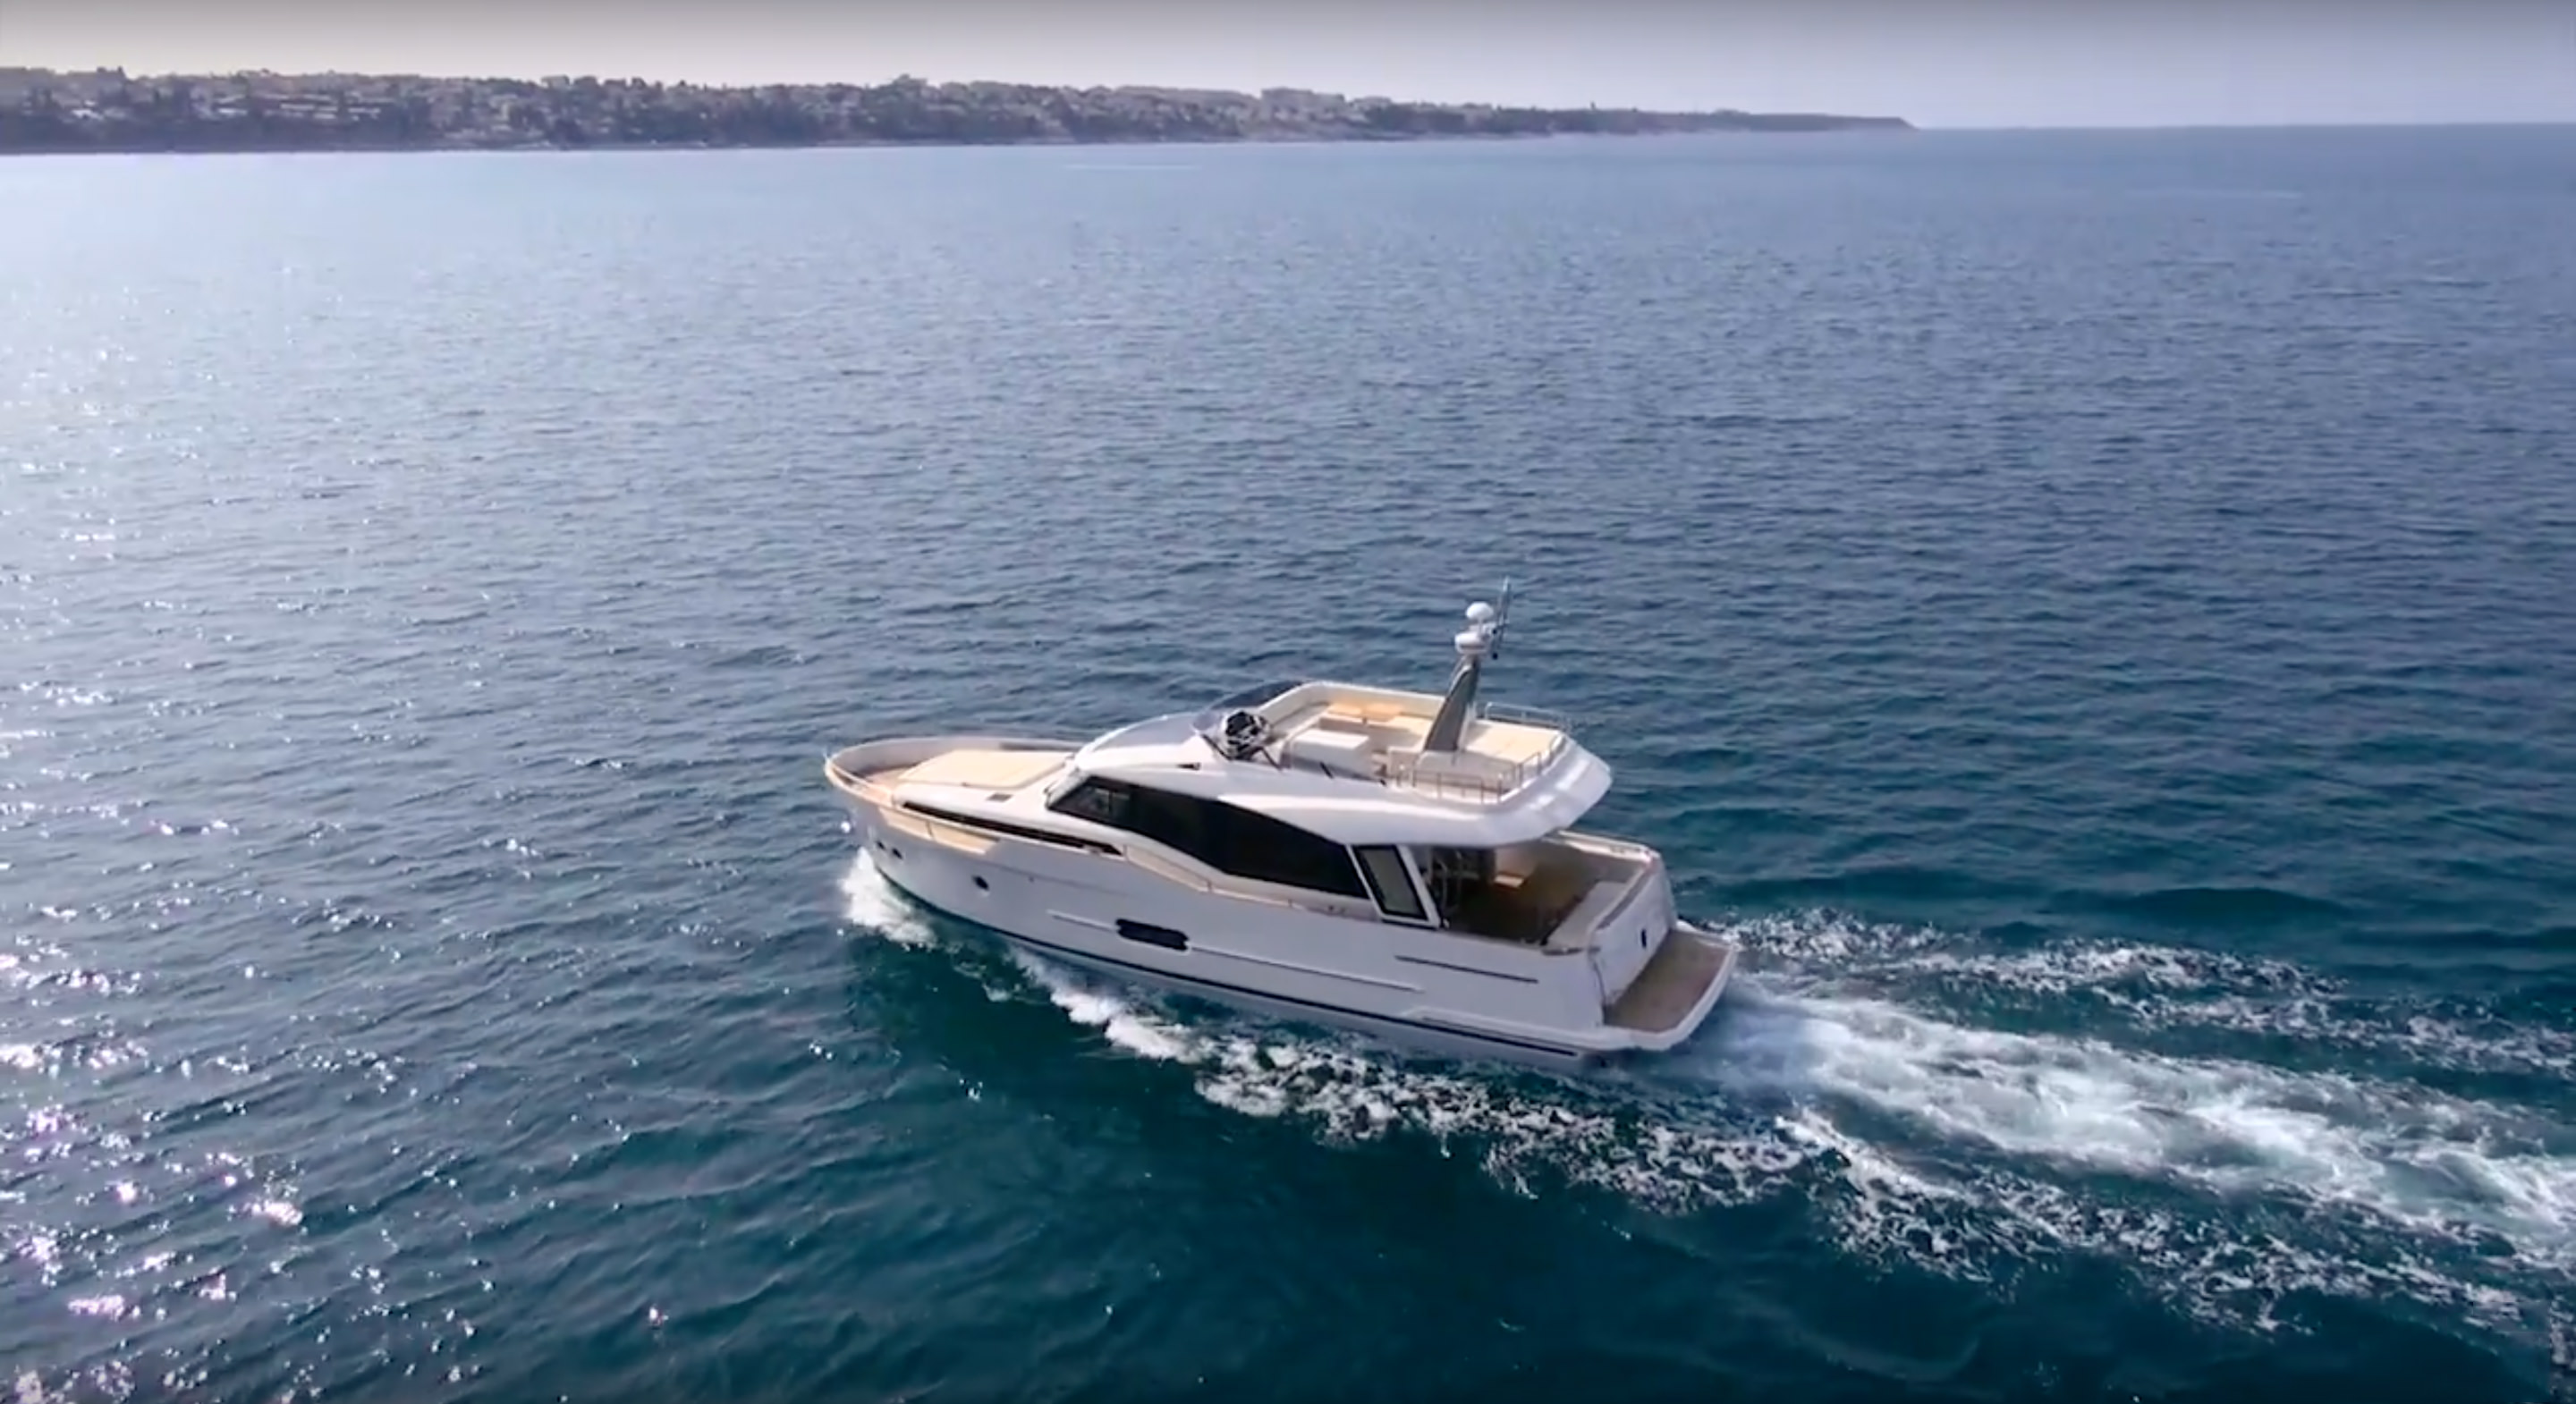 Yacht pictures. A Greenline Yacht cruising on the water.